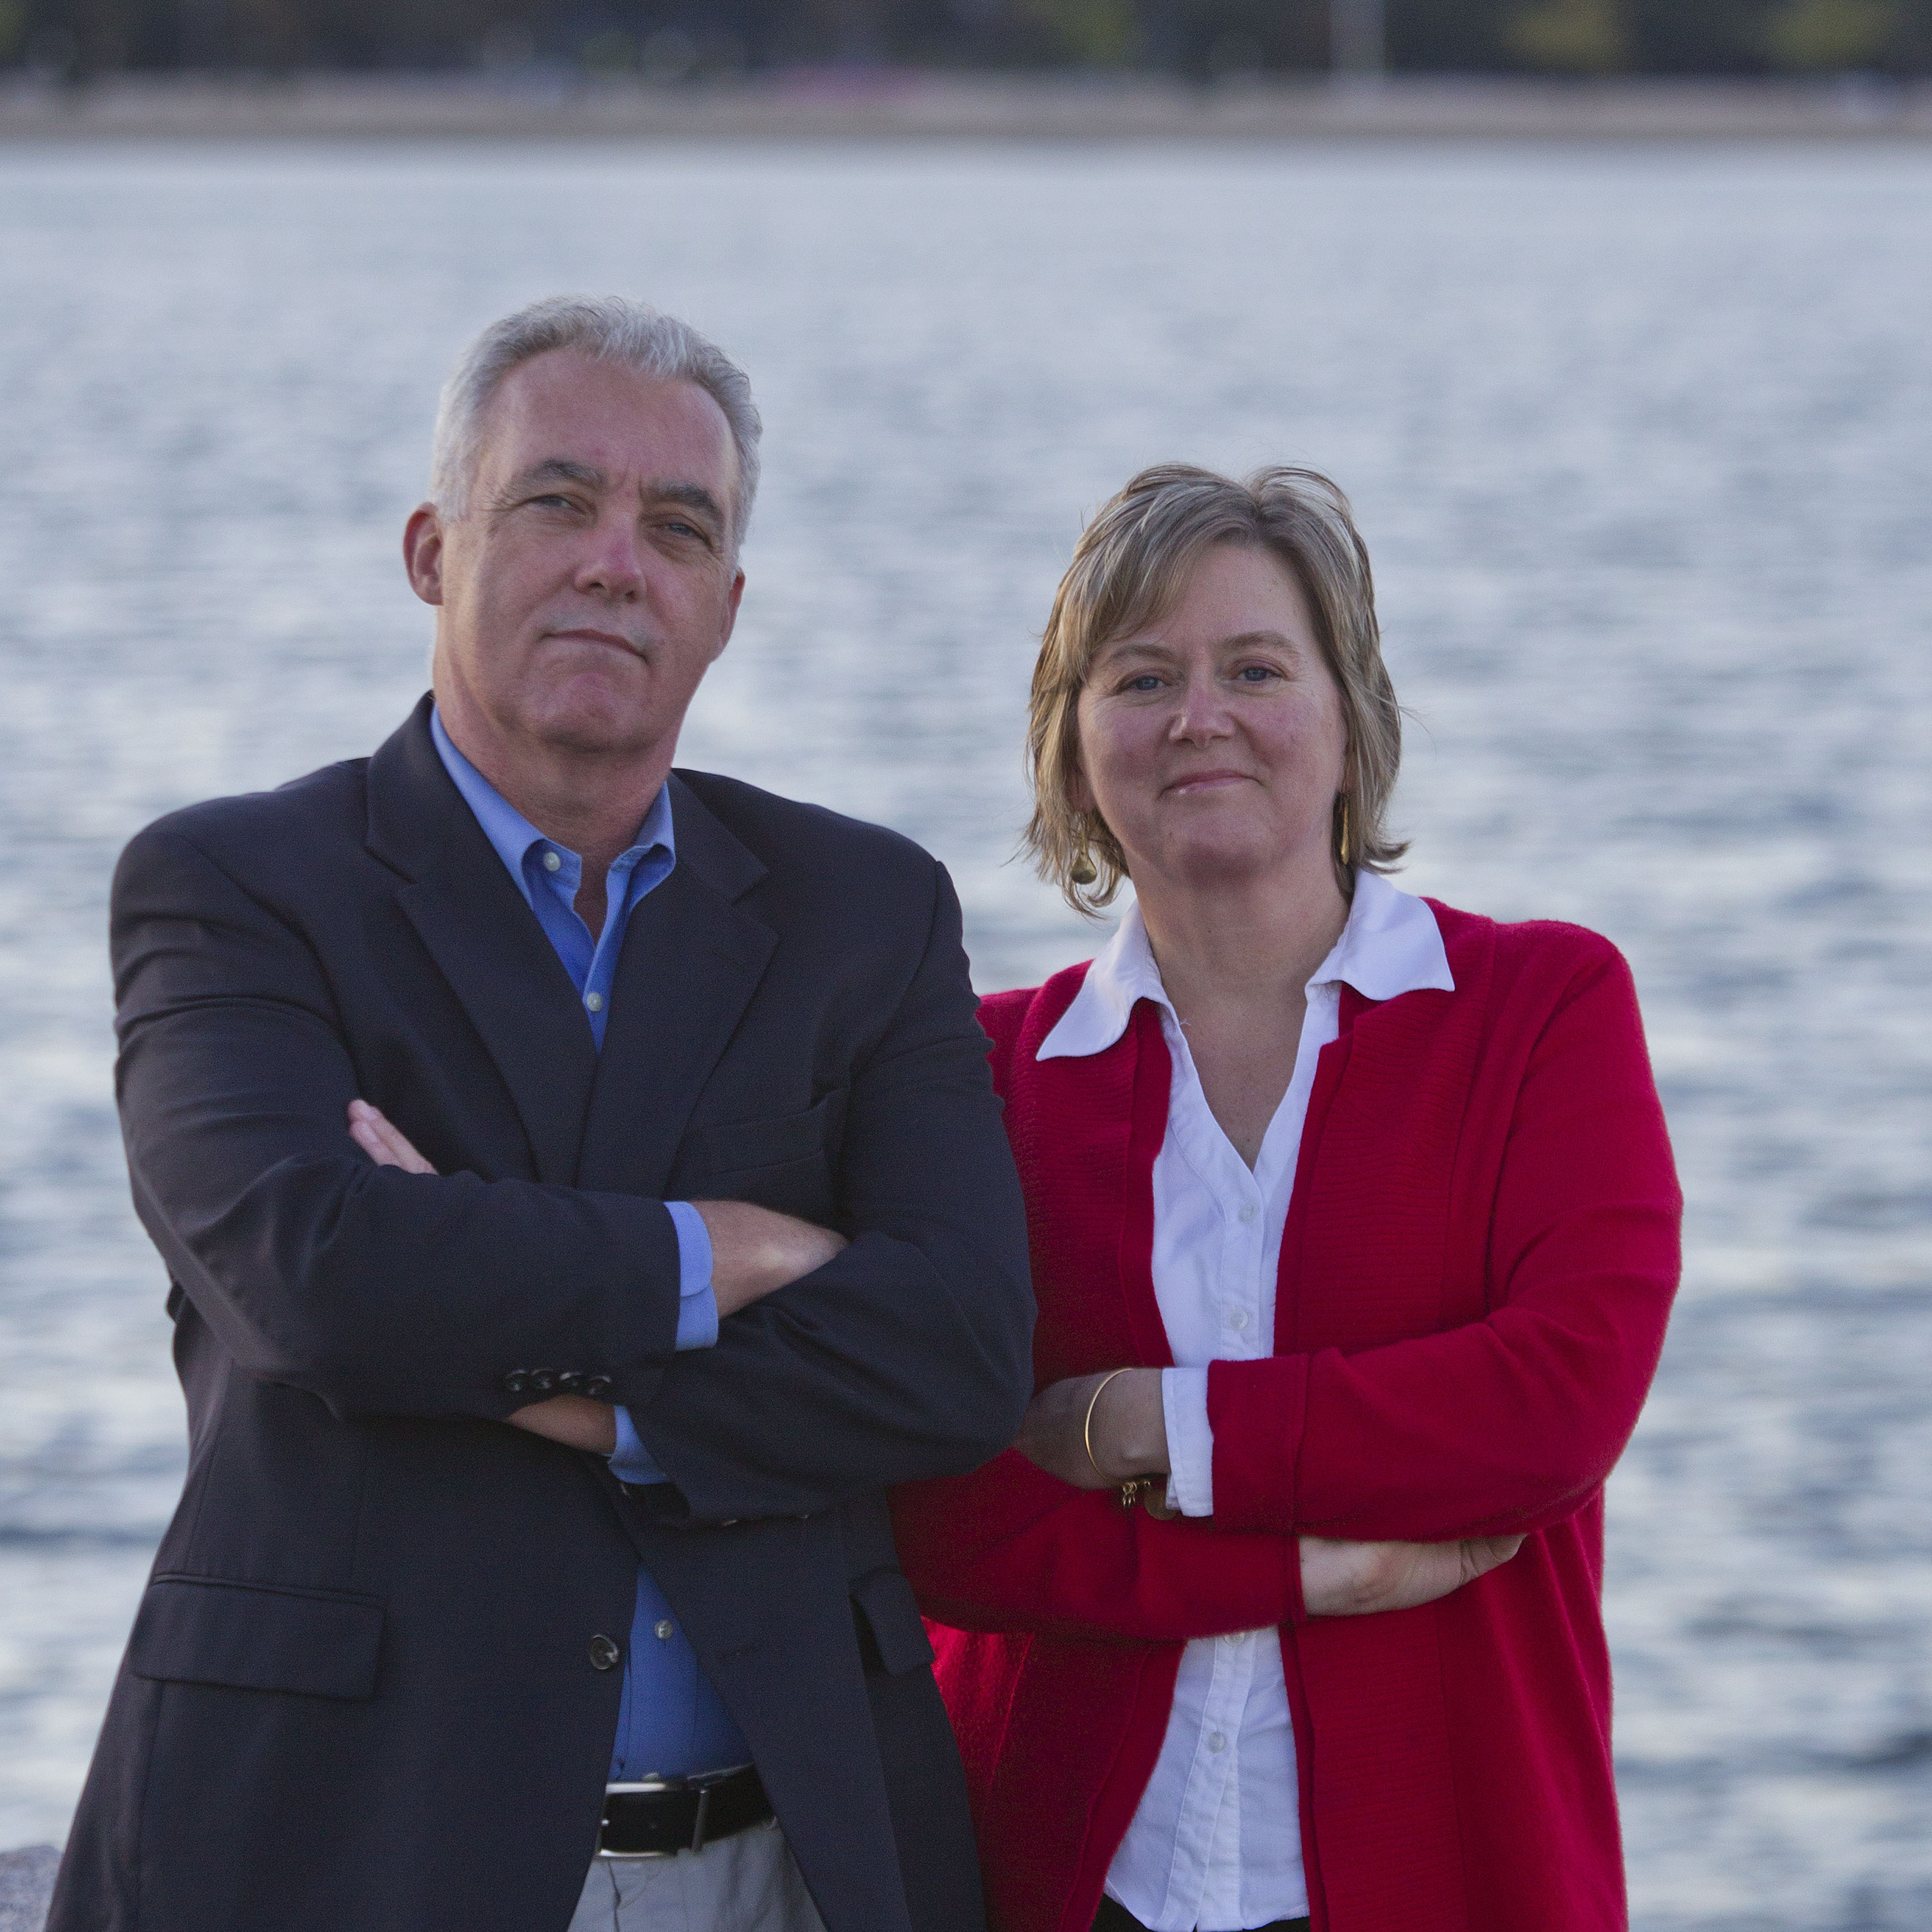 Kevin Cullen and Shelley Murphy are reporters for The Boston Globe.